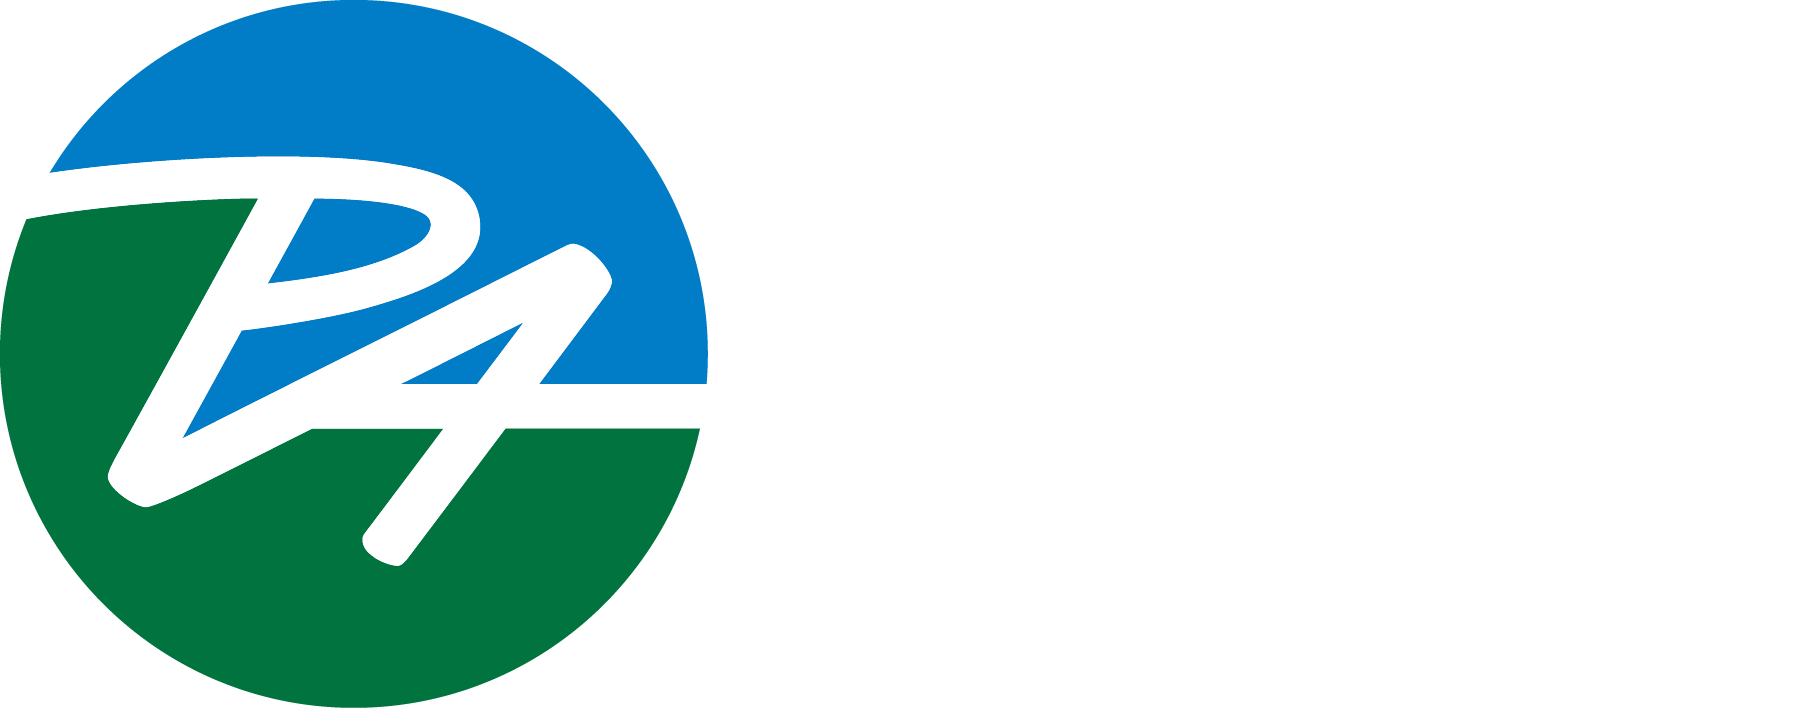 Project Adventure logo